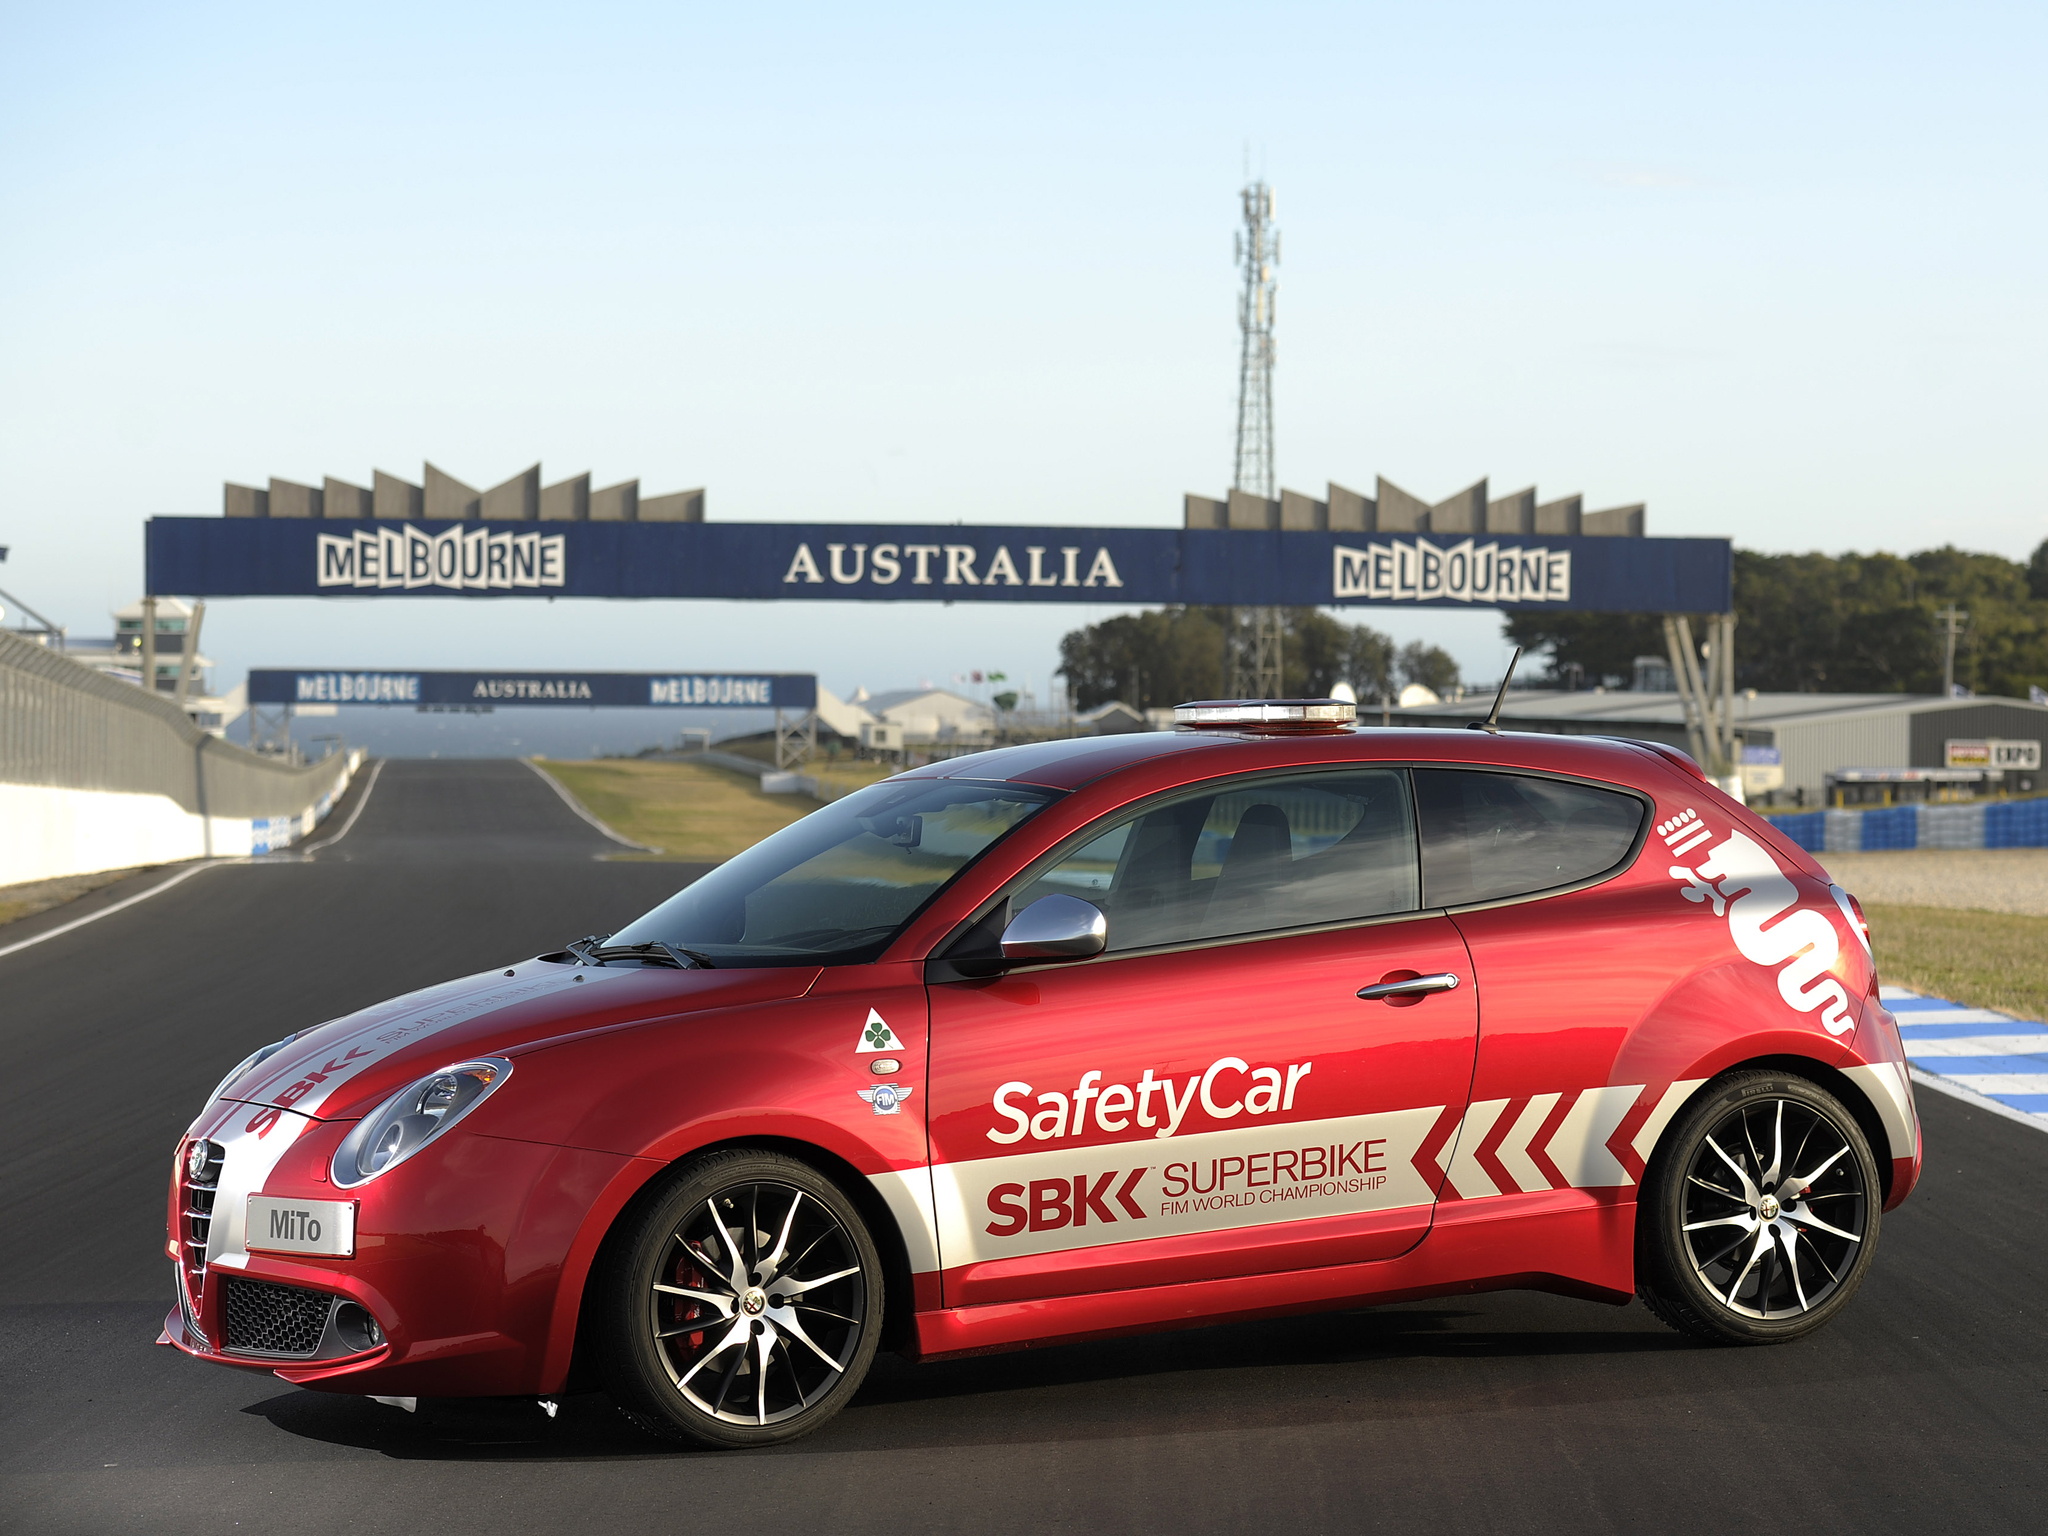 2013 Alfa Romeo Mito Quadrifoglio Verde Sbk Safety Car 955 Tuning Race Racing E Wallpaper 2048x1536 166079 Wallpaperup